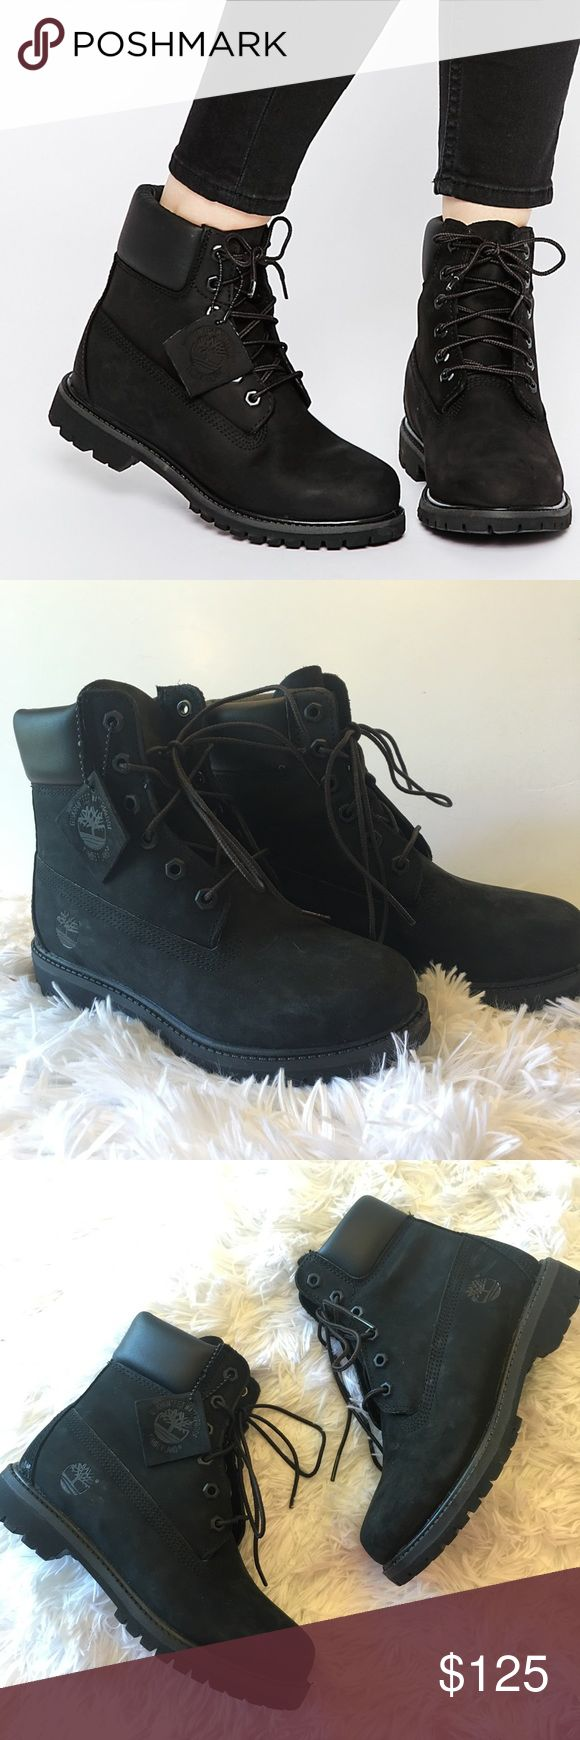 New Timberland Premium Black Lace Up Boots Super chic and perfectly on trend! Brand new and never worn. Size 6. Black. Lace up front. No trades!! 042017210nrk Timberland Shoes Ankle Boots & Booties